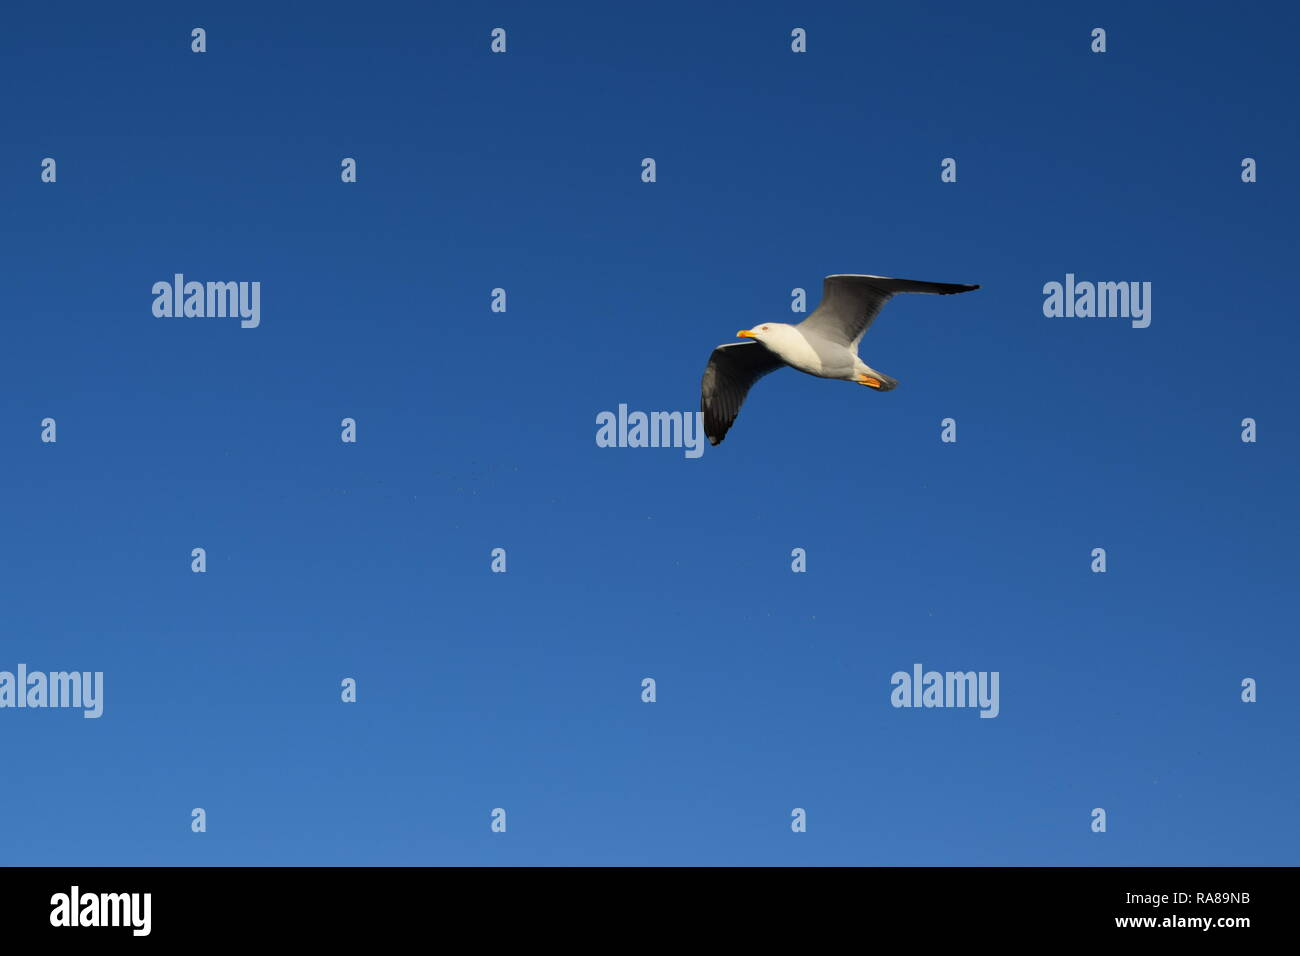 Seagull flying in a very blue sky near the sea and the beach - Stock Image